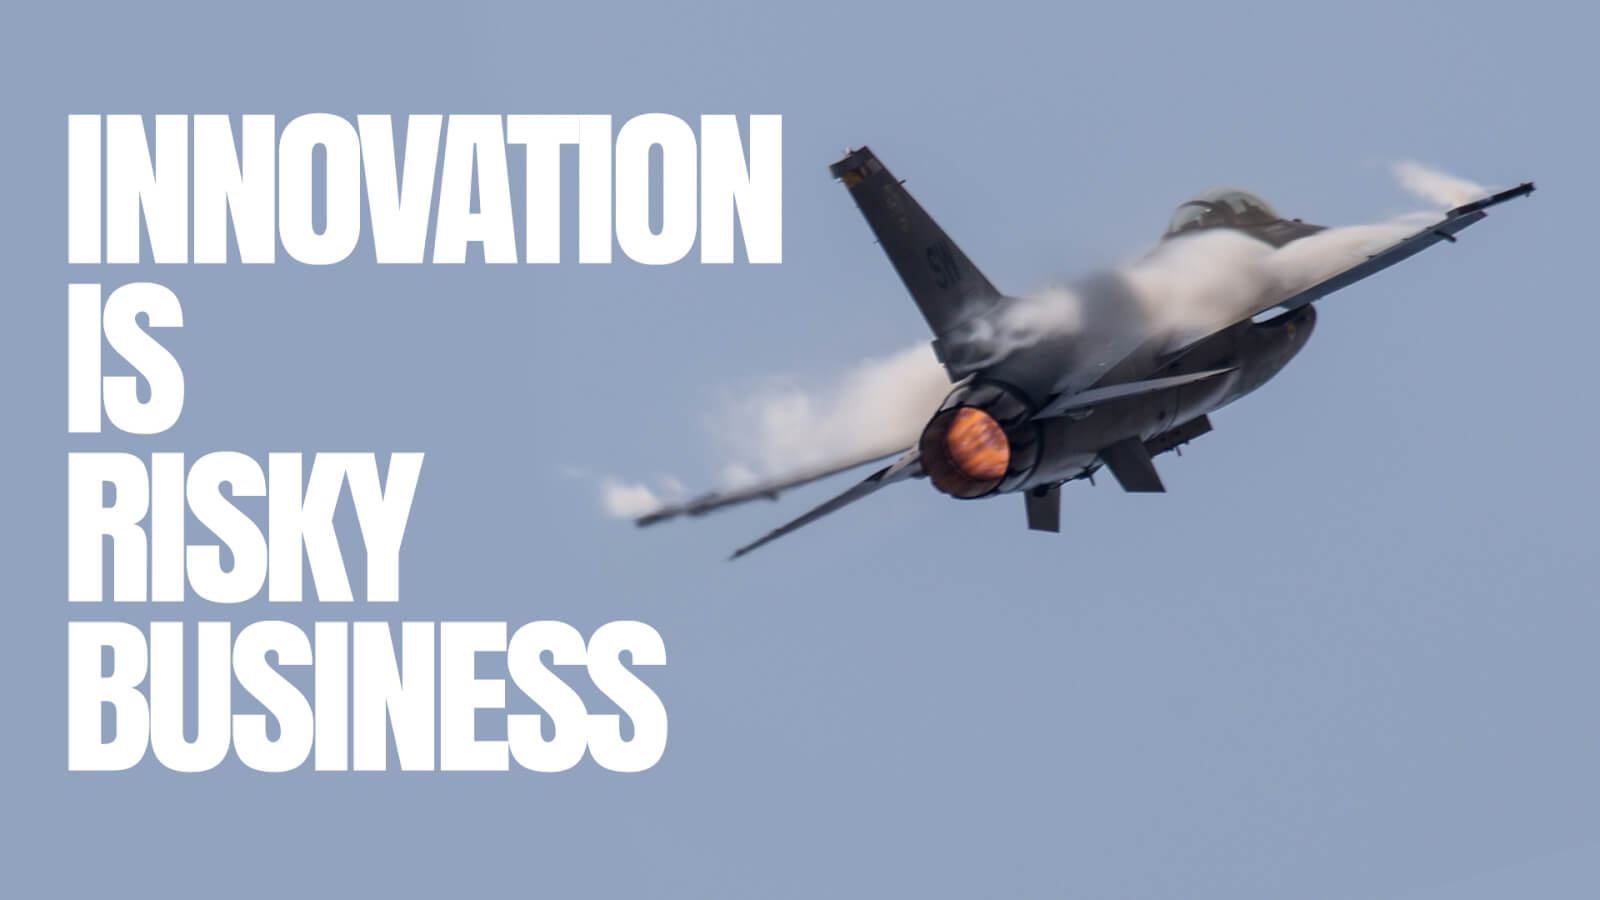 Innovation is risky business